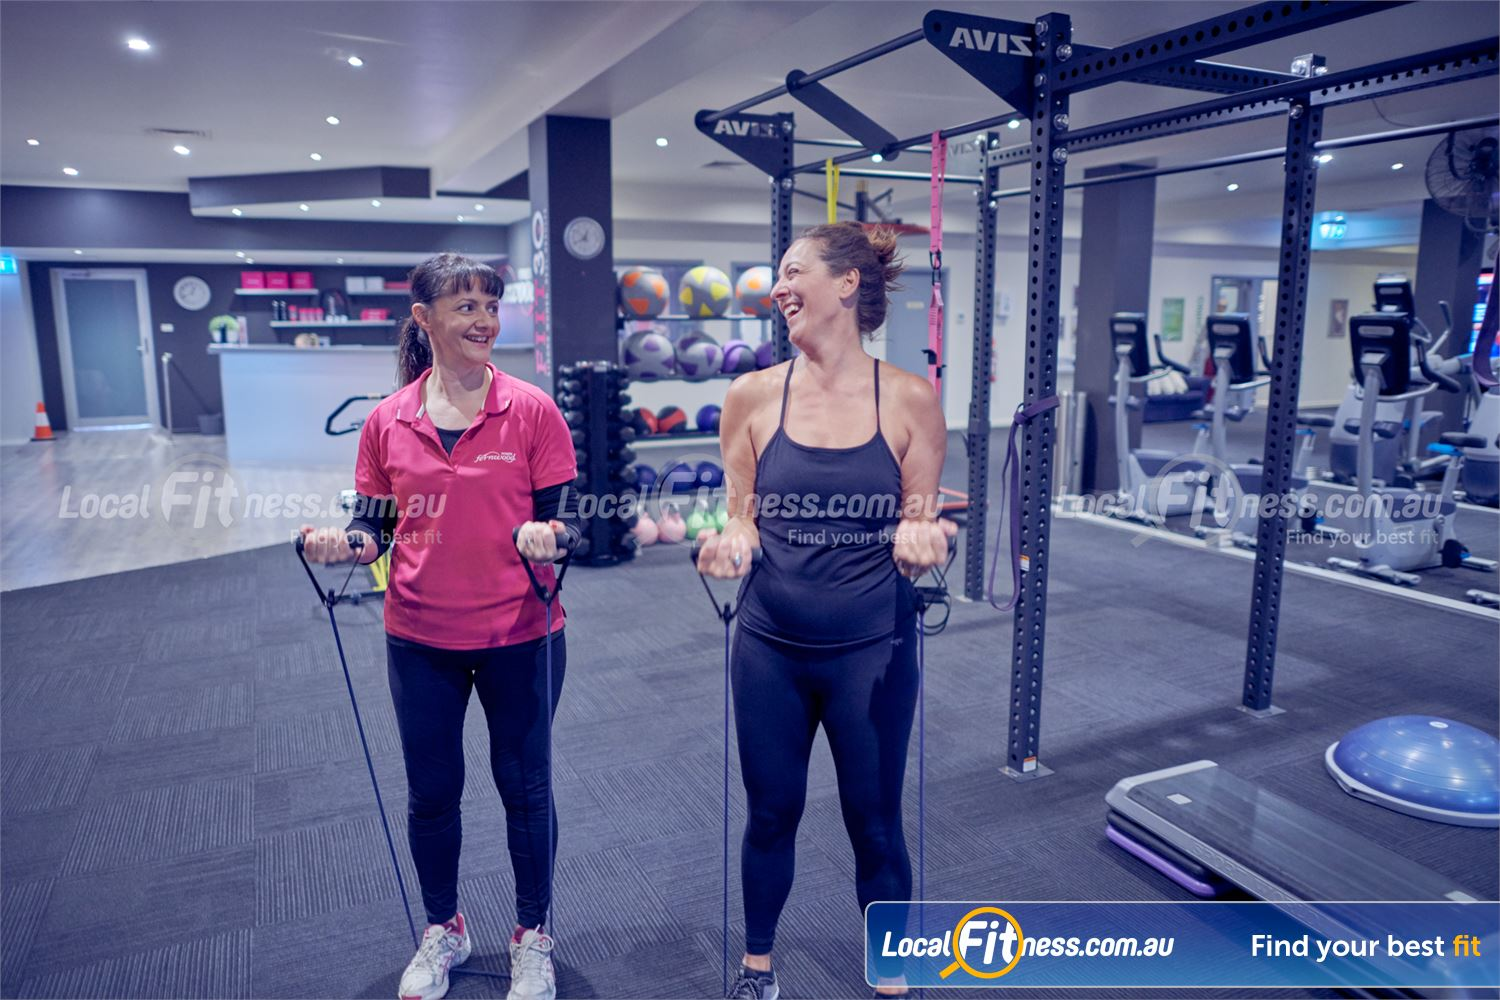 Fernwood Fitness Near Doncaster Our Bulleen gym includes state of the art strength training including band training.